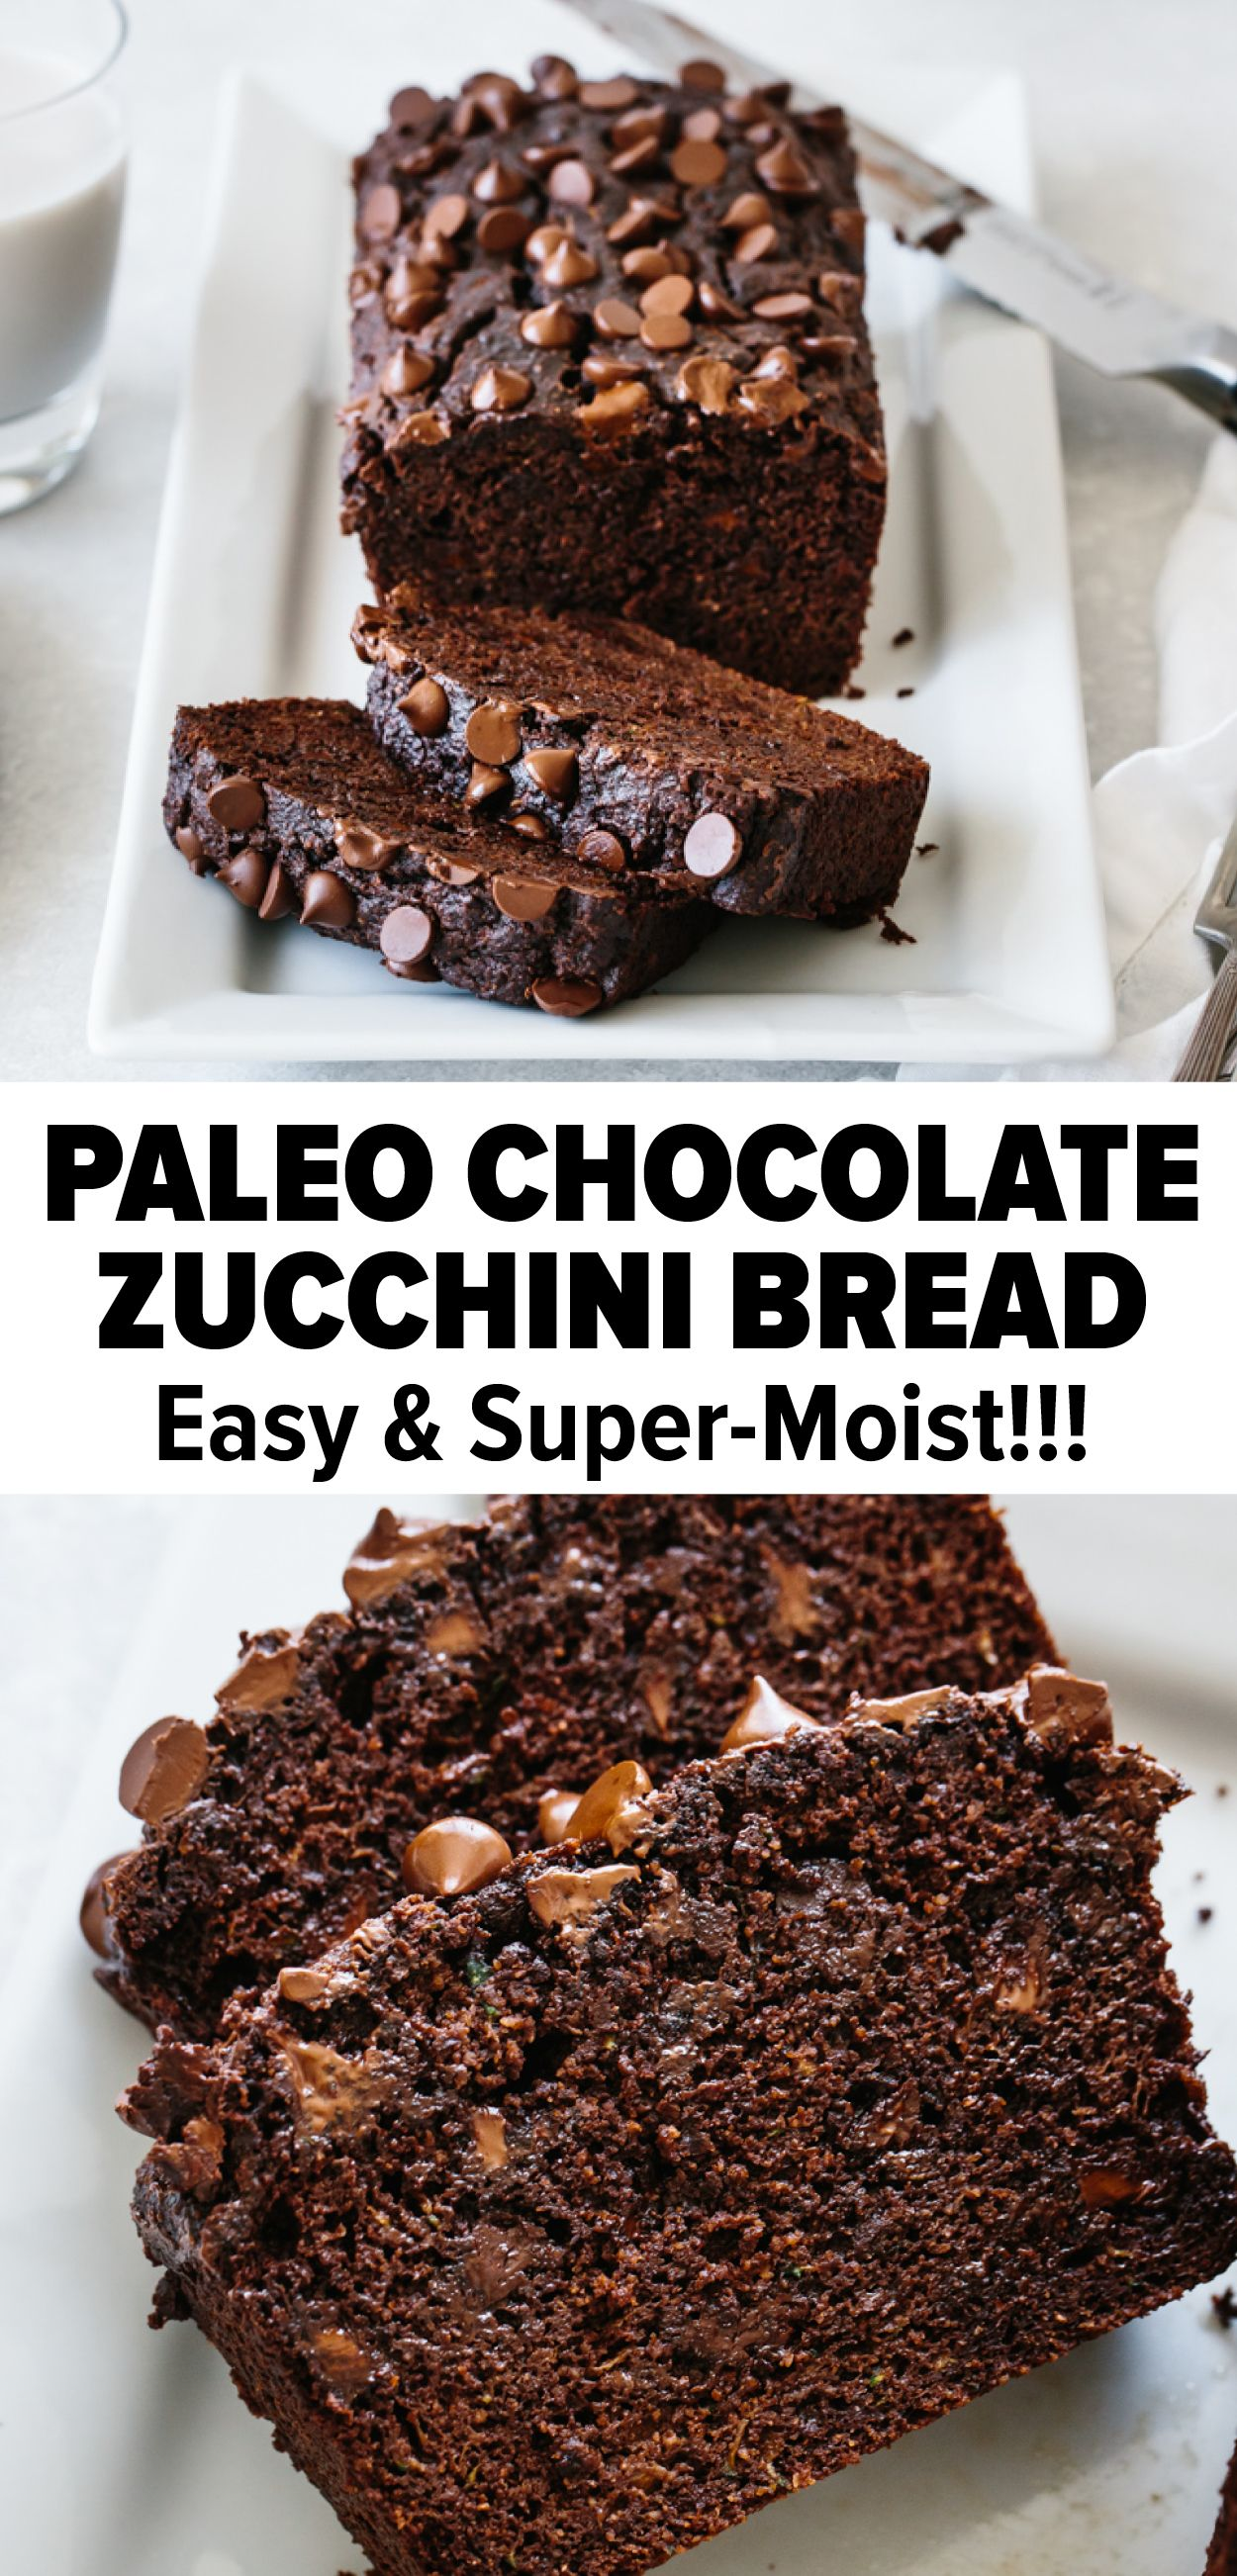 Paleo Chocolate Zucchini Bread (So Moist!) | Downshiftolggy